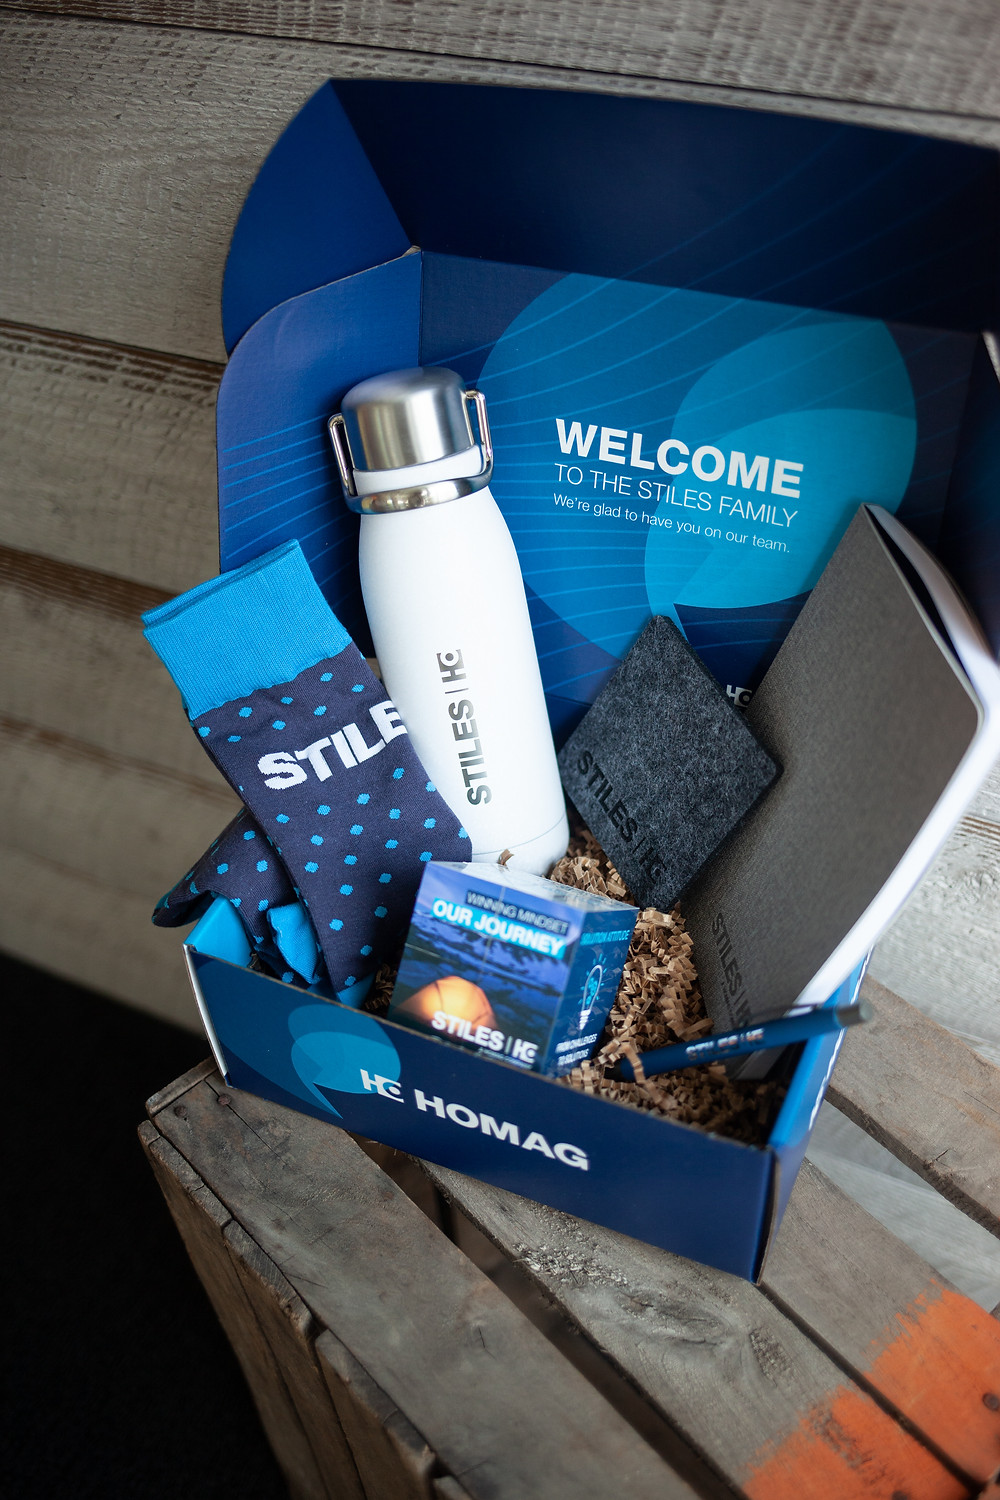 new hire welcome kit